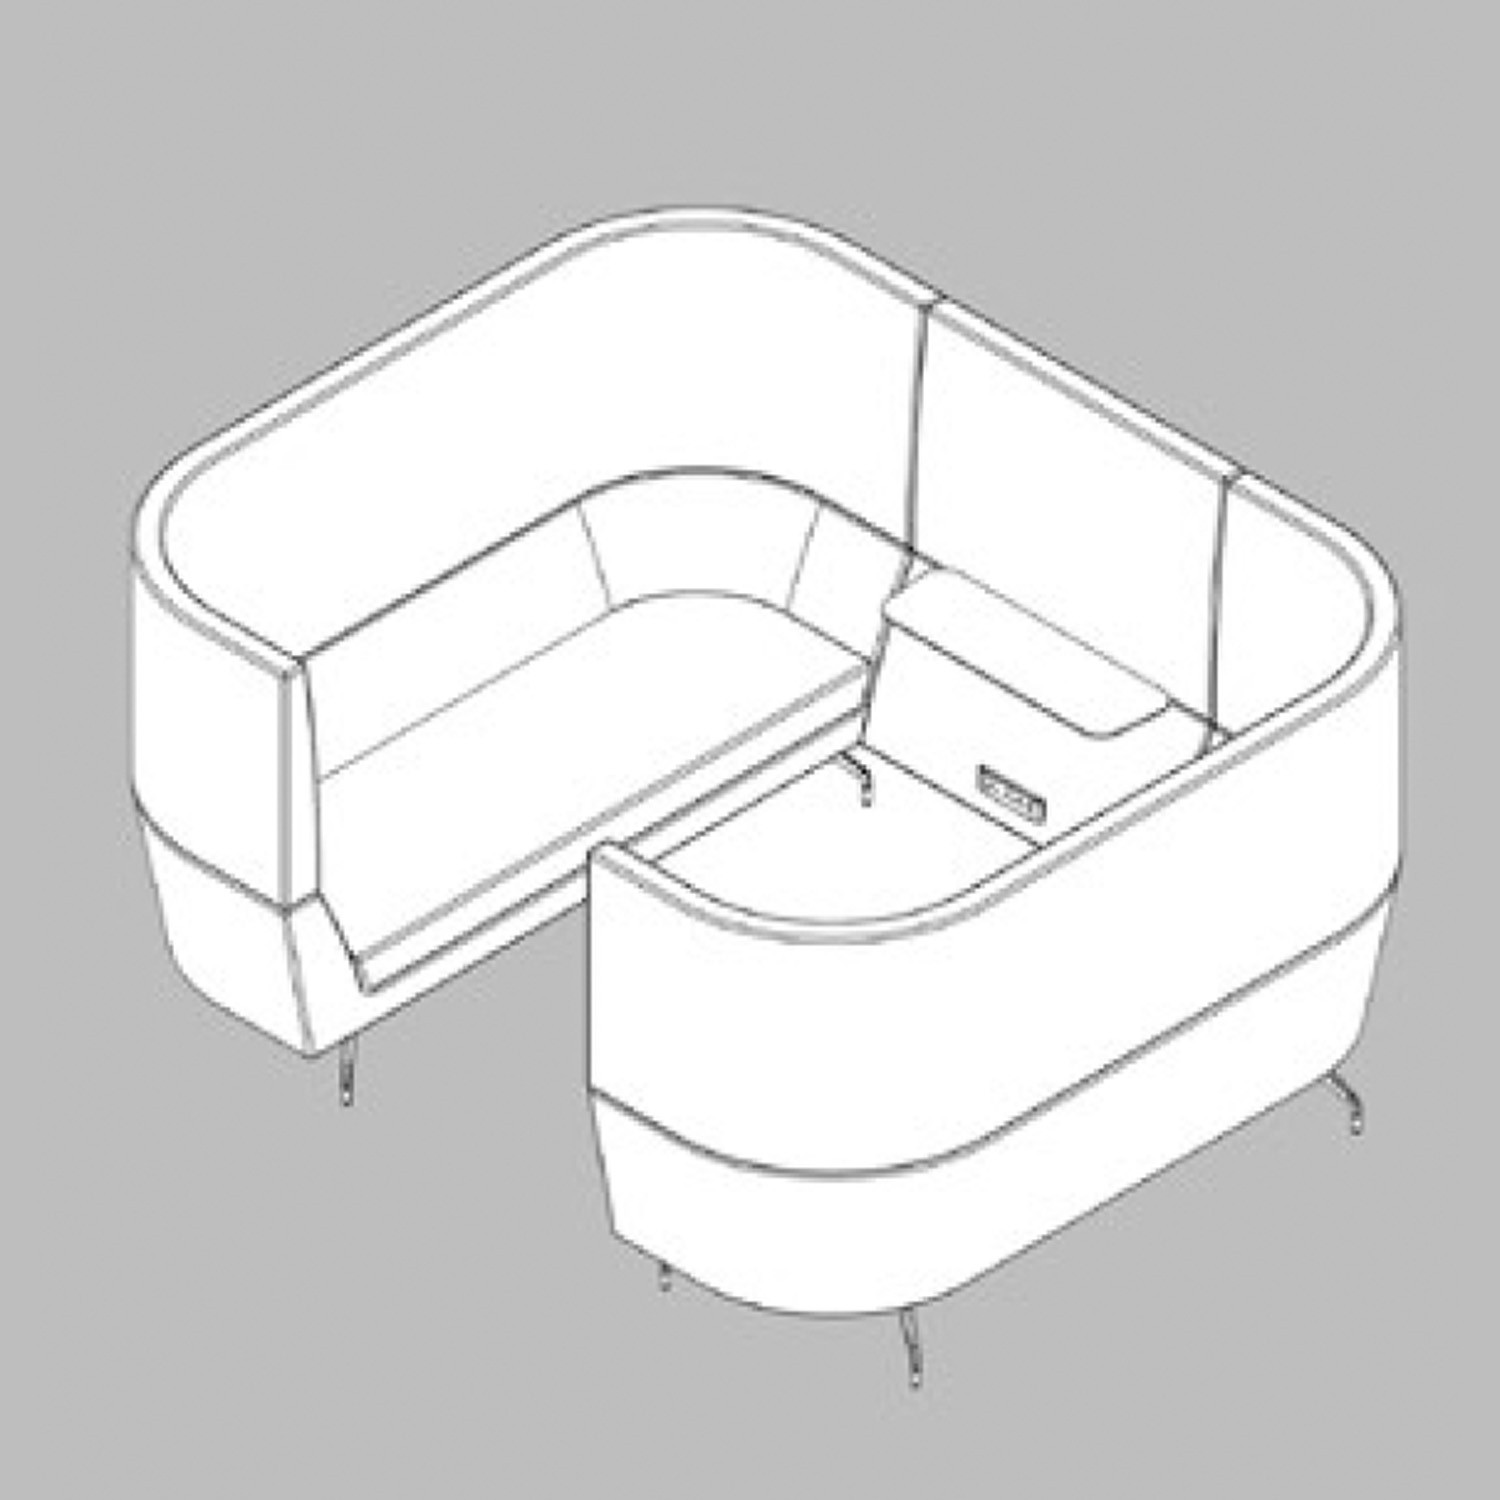 Cwtch Workbay Sofa CAD